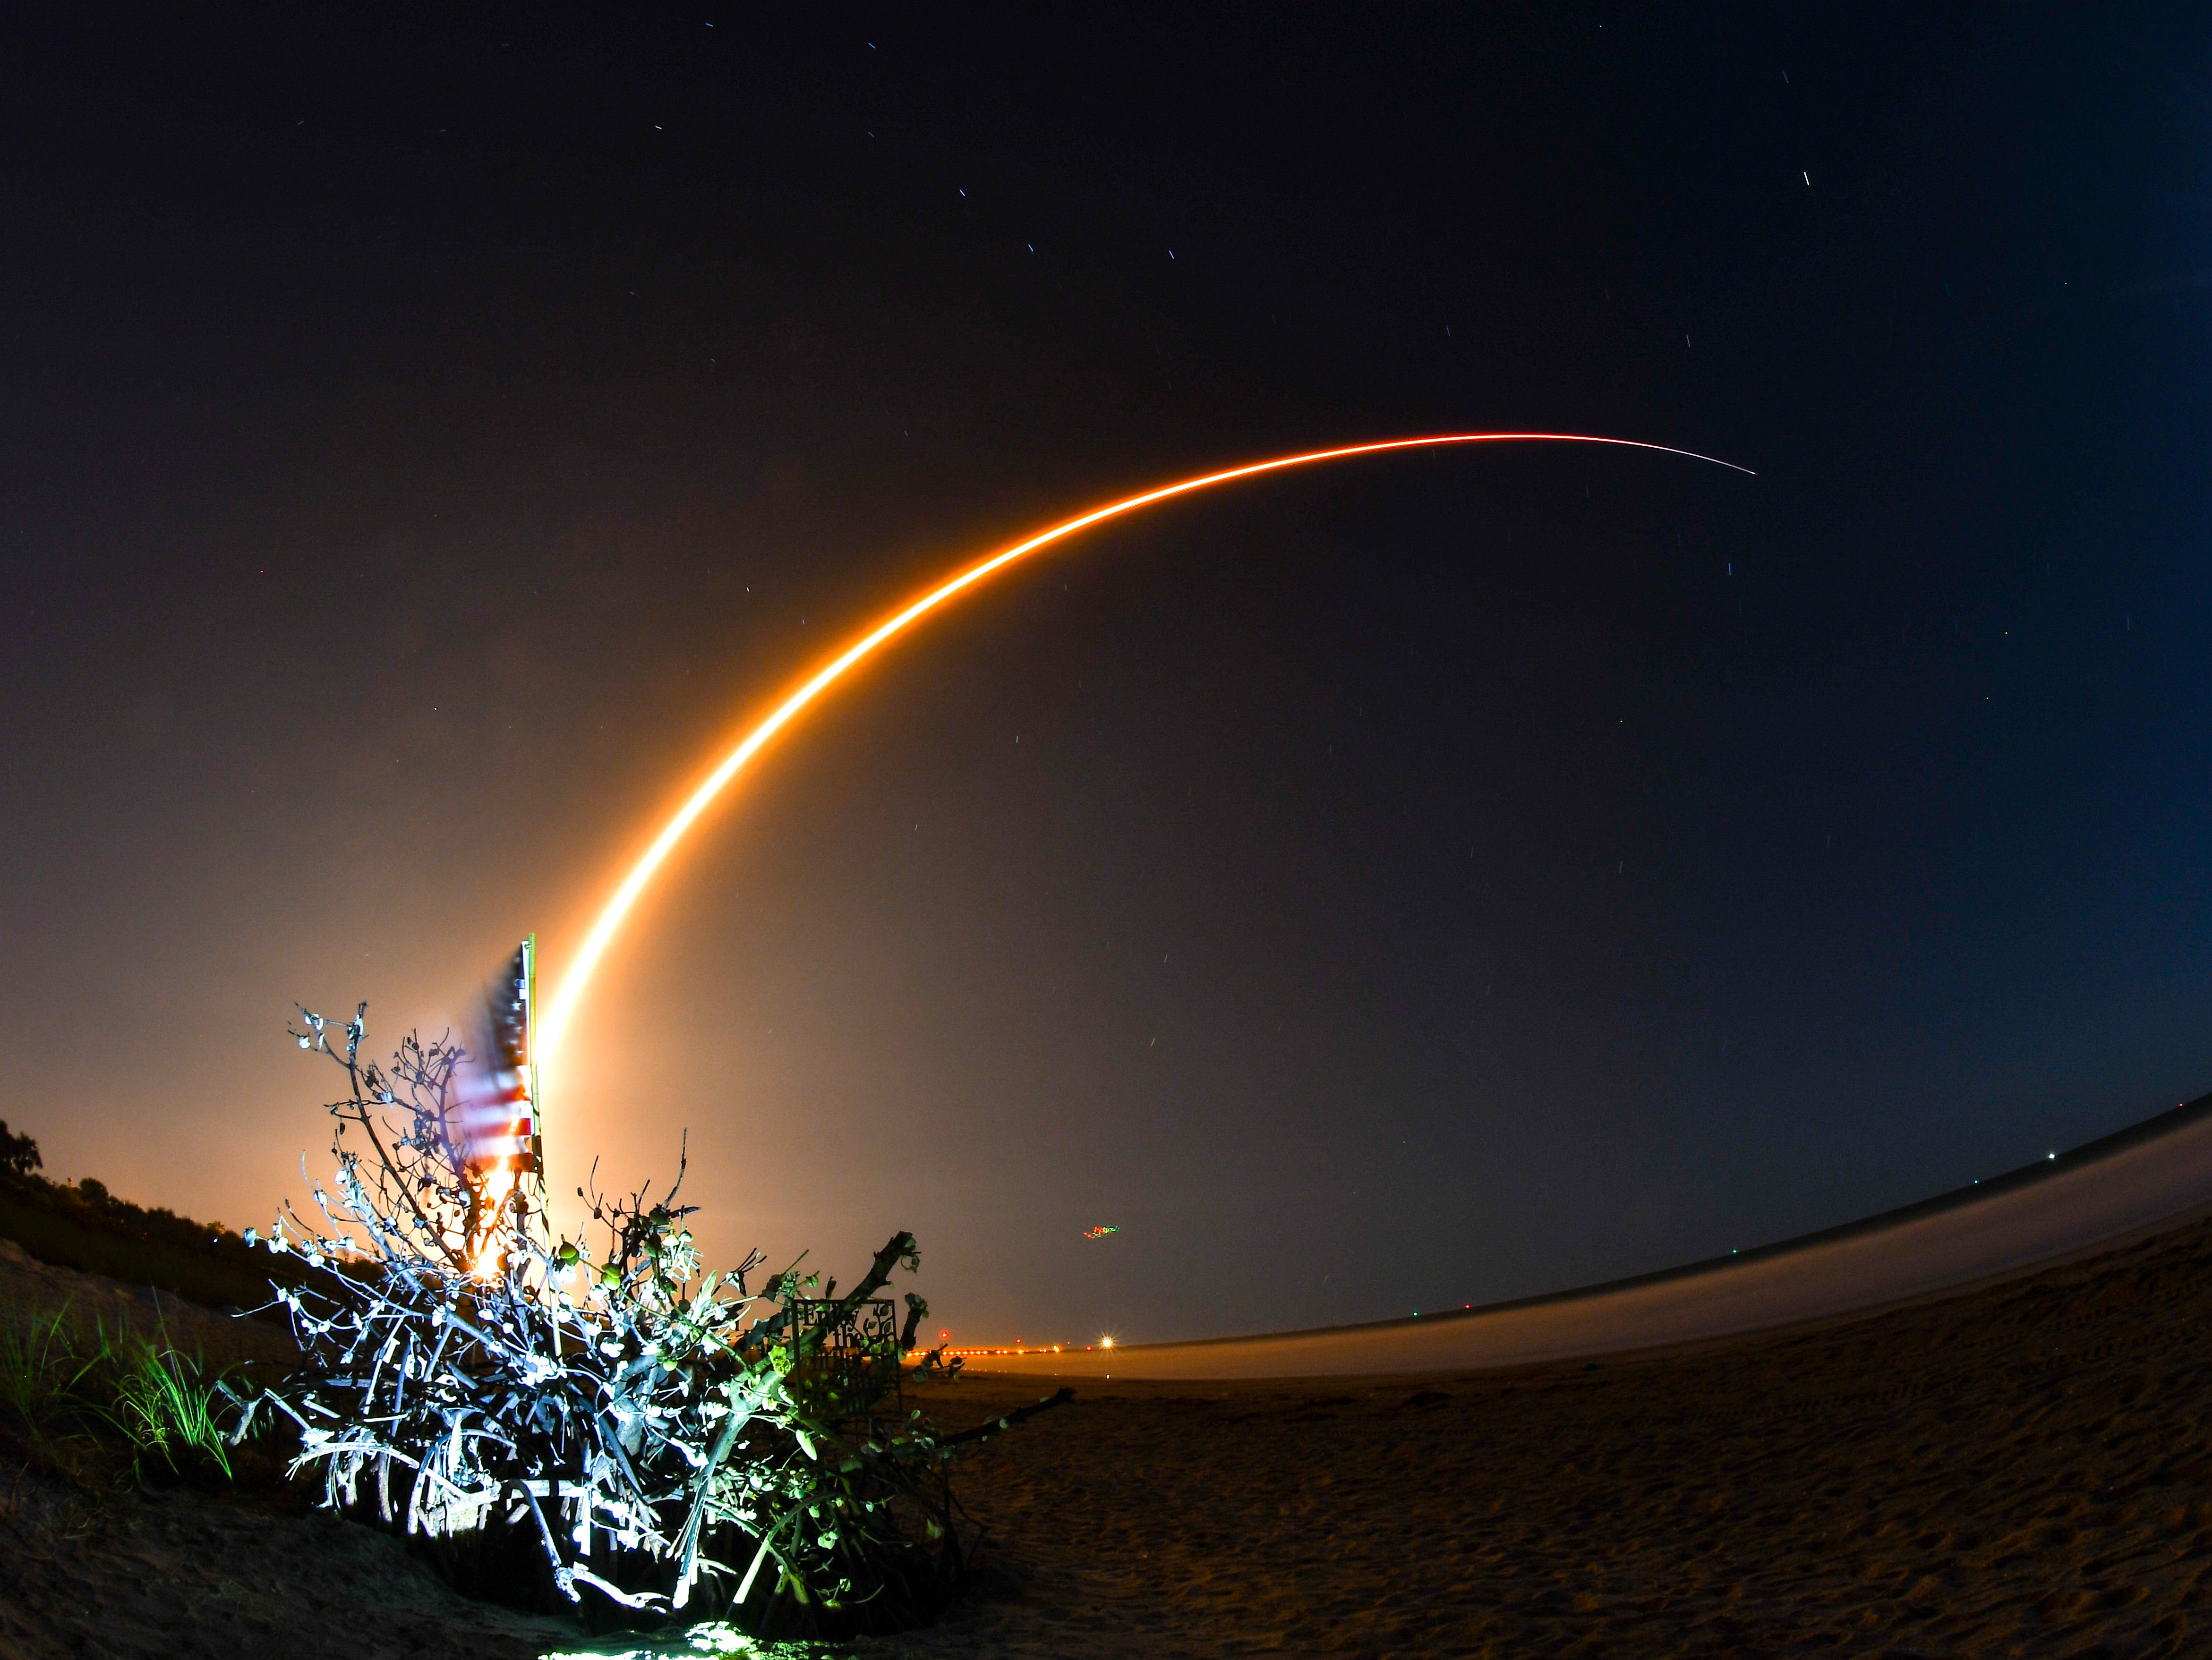 In the foreground is the landmark shell tree, in the sky a time exposure of the SpaceX rocket and the moon. The SpaceX launch of a  Falcon 9 rocket from Complex 40 at Cape Canaveral Air Force Station with a commercial communications satellite early Tuesday morning at 12:33 a.m. The satellite, known as Hispasat 30W-6, is a 12,000-pound spacecraft that will provide television, broadband and other communications services to the Americas and Europe.